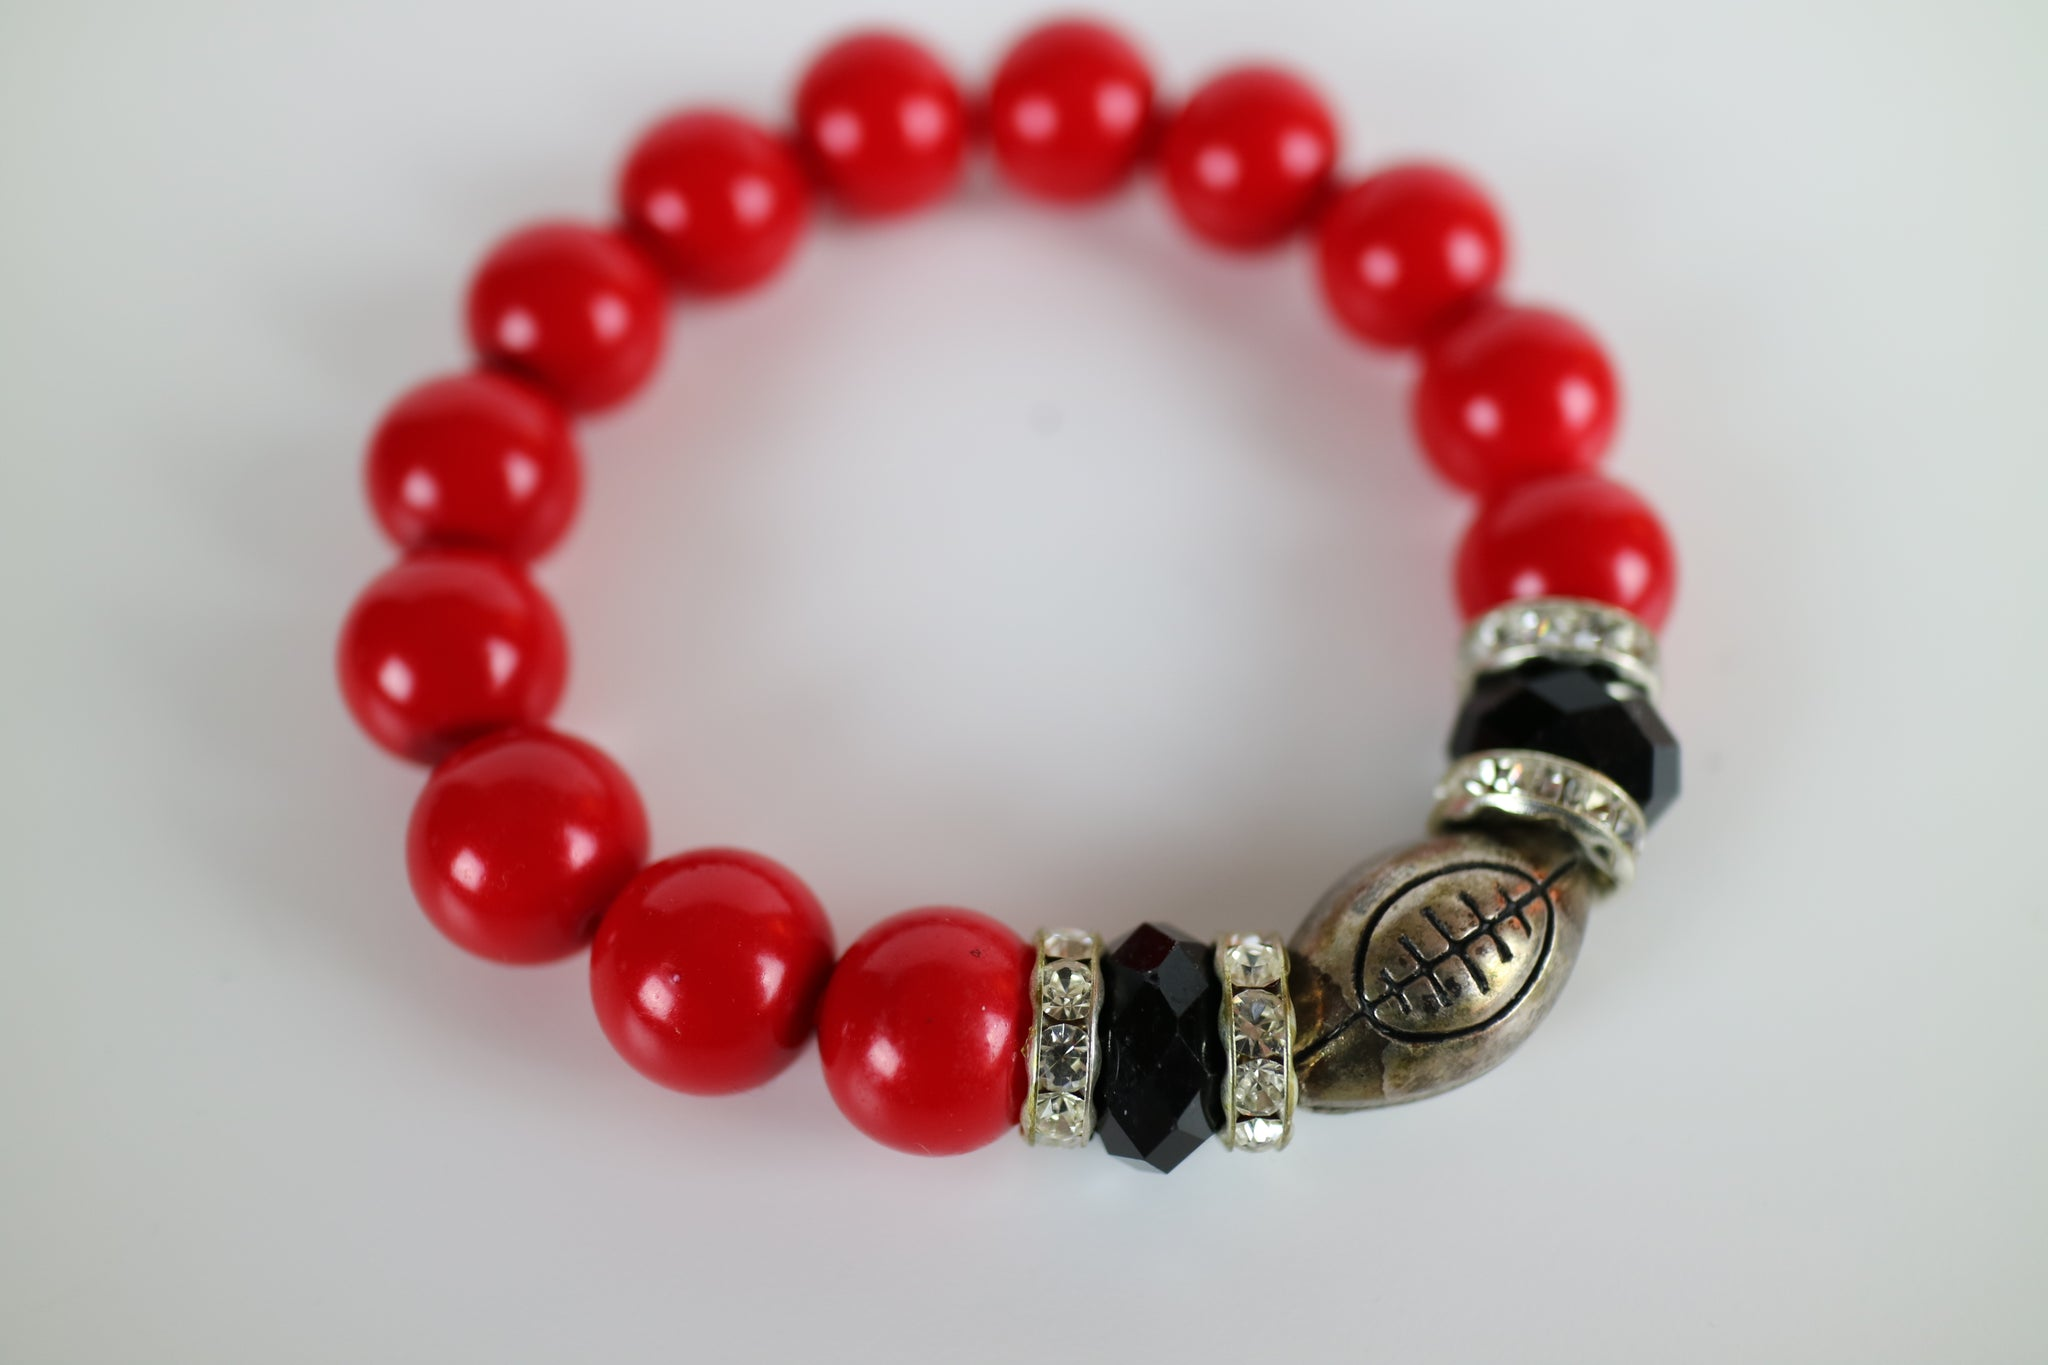 Rudolph's Nose Superbowl Bead Bracelet